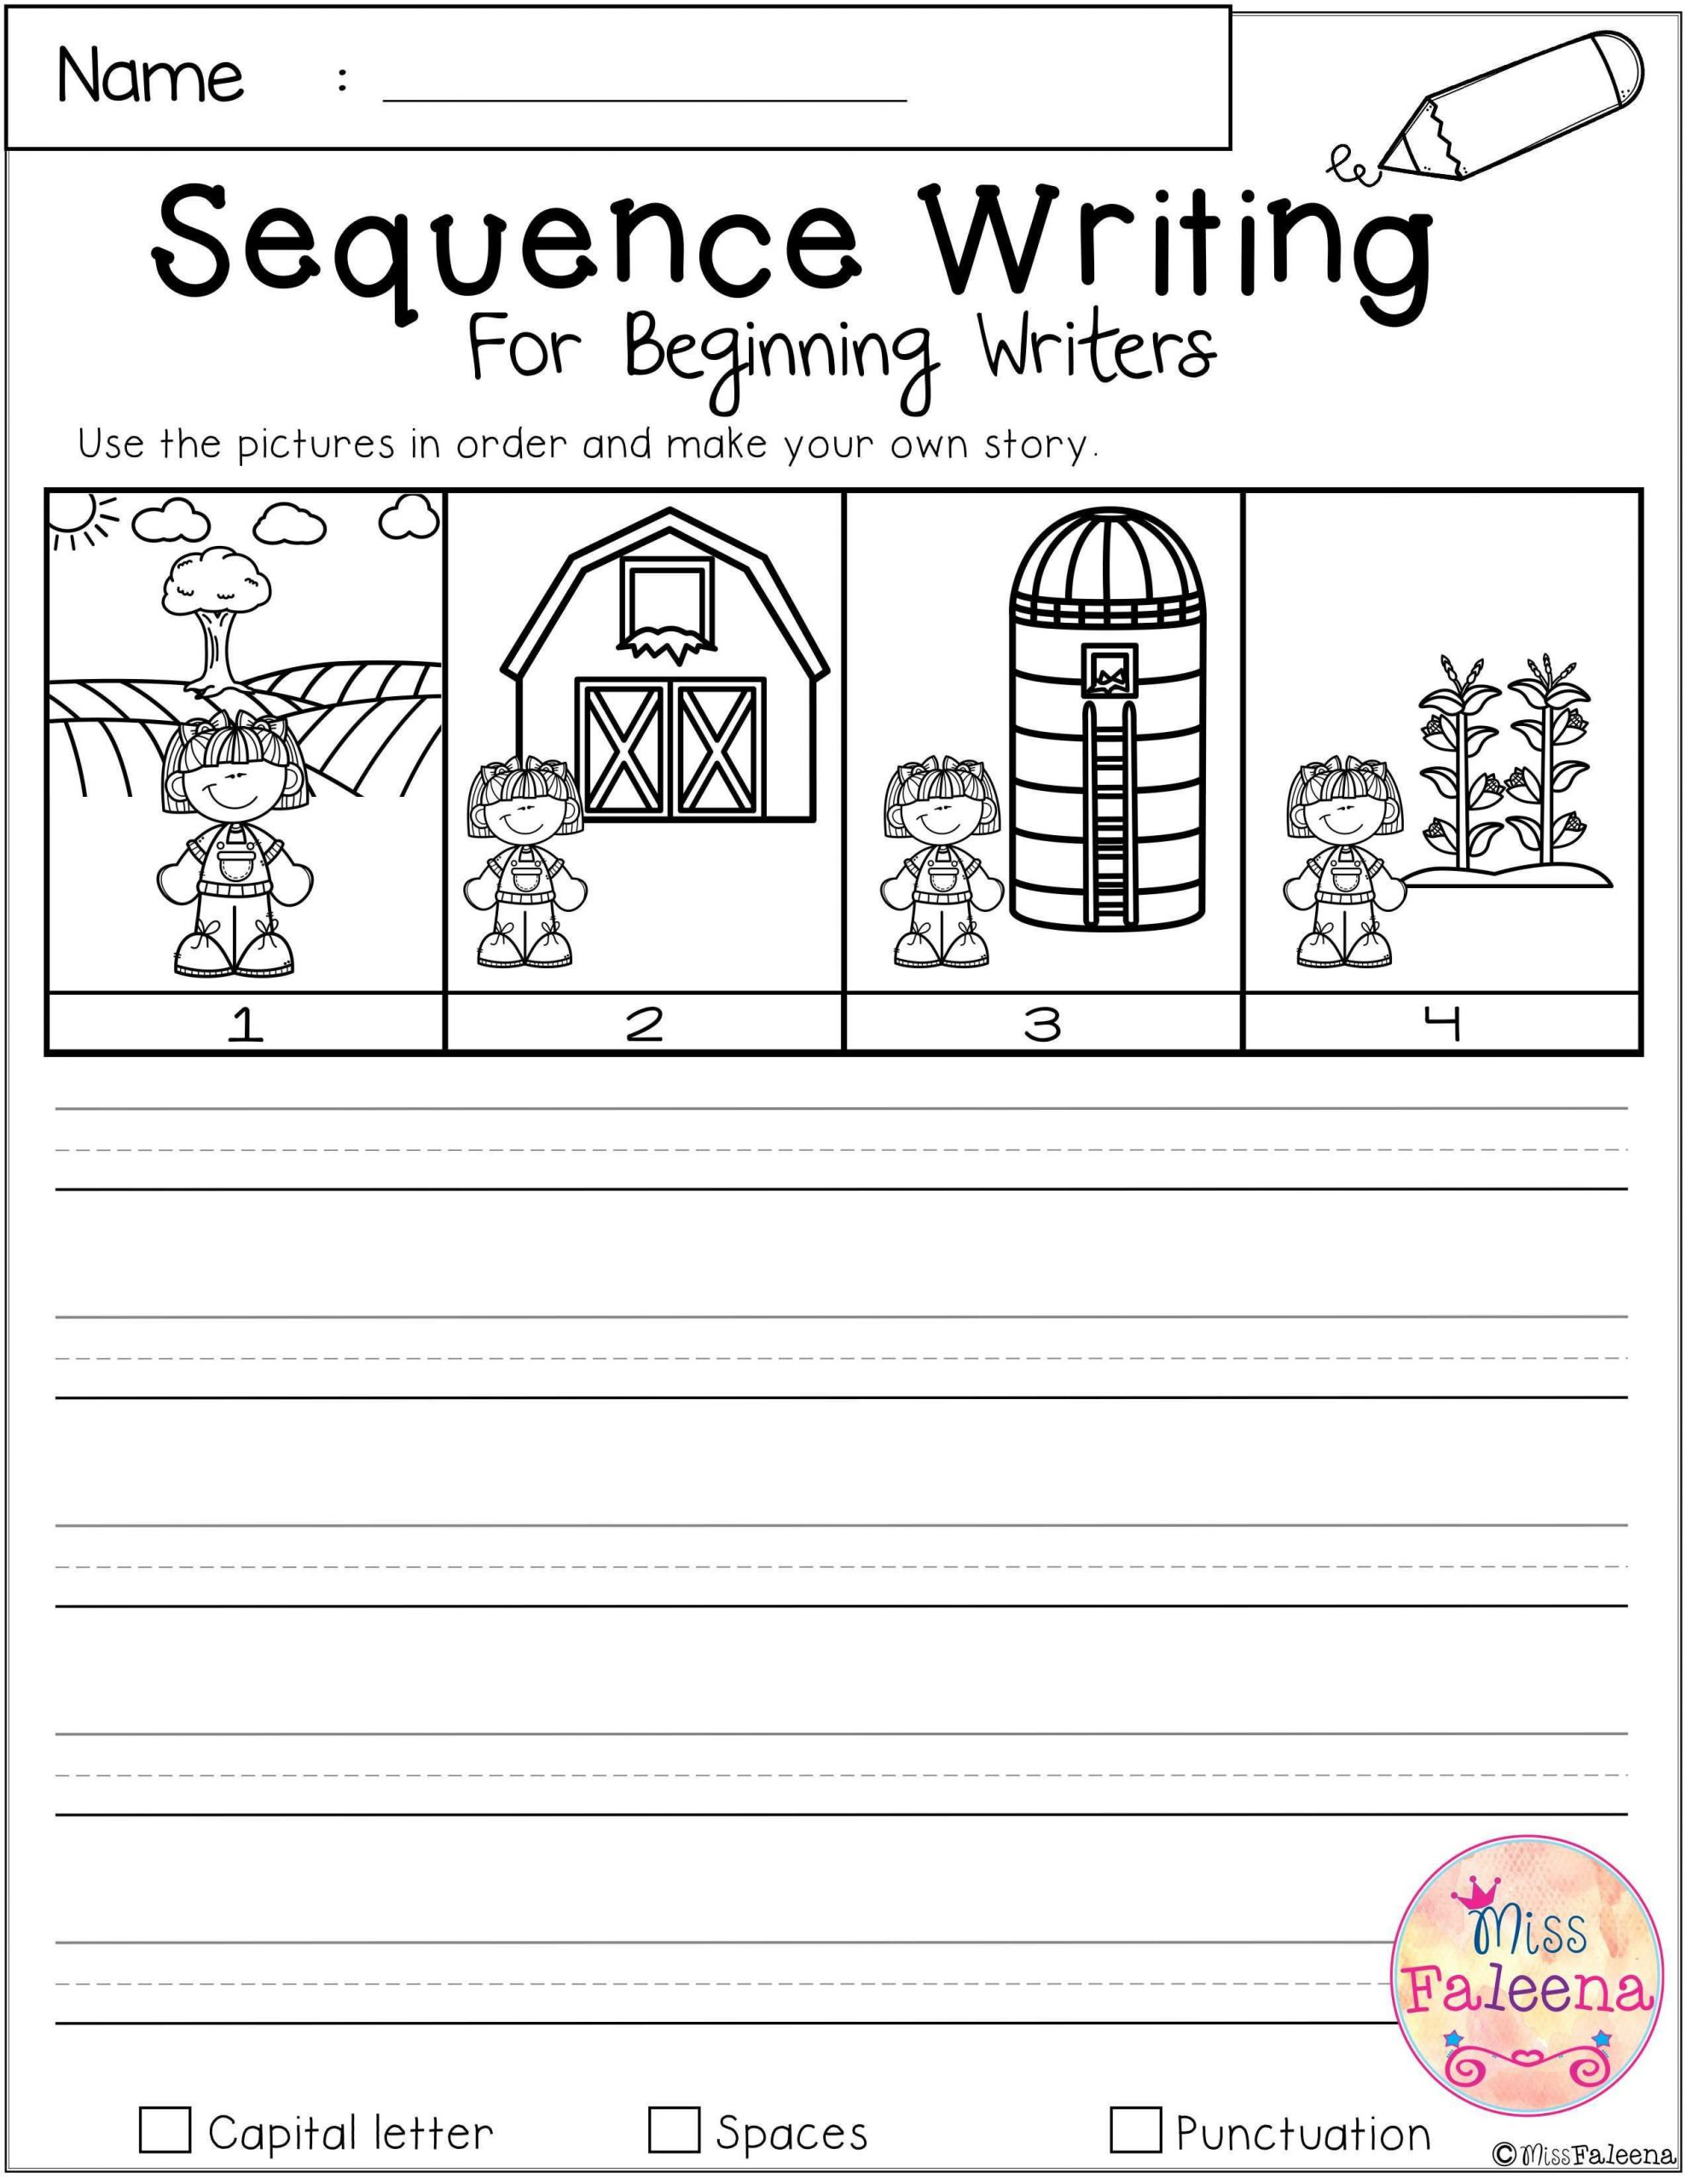 Free Printable Sequencing Worksheets Free Sequence Writing for Beginning Writers